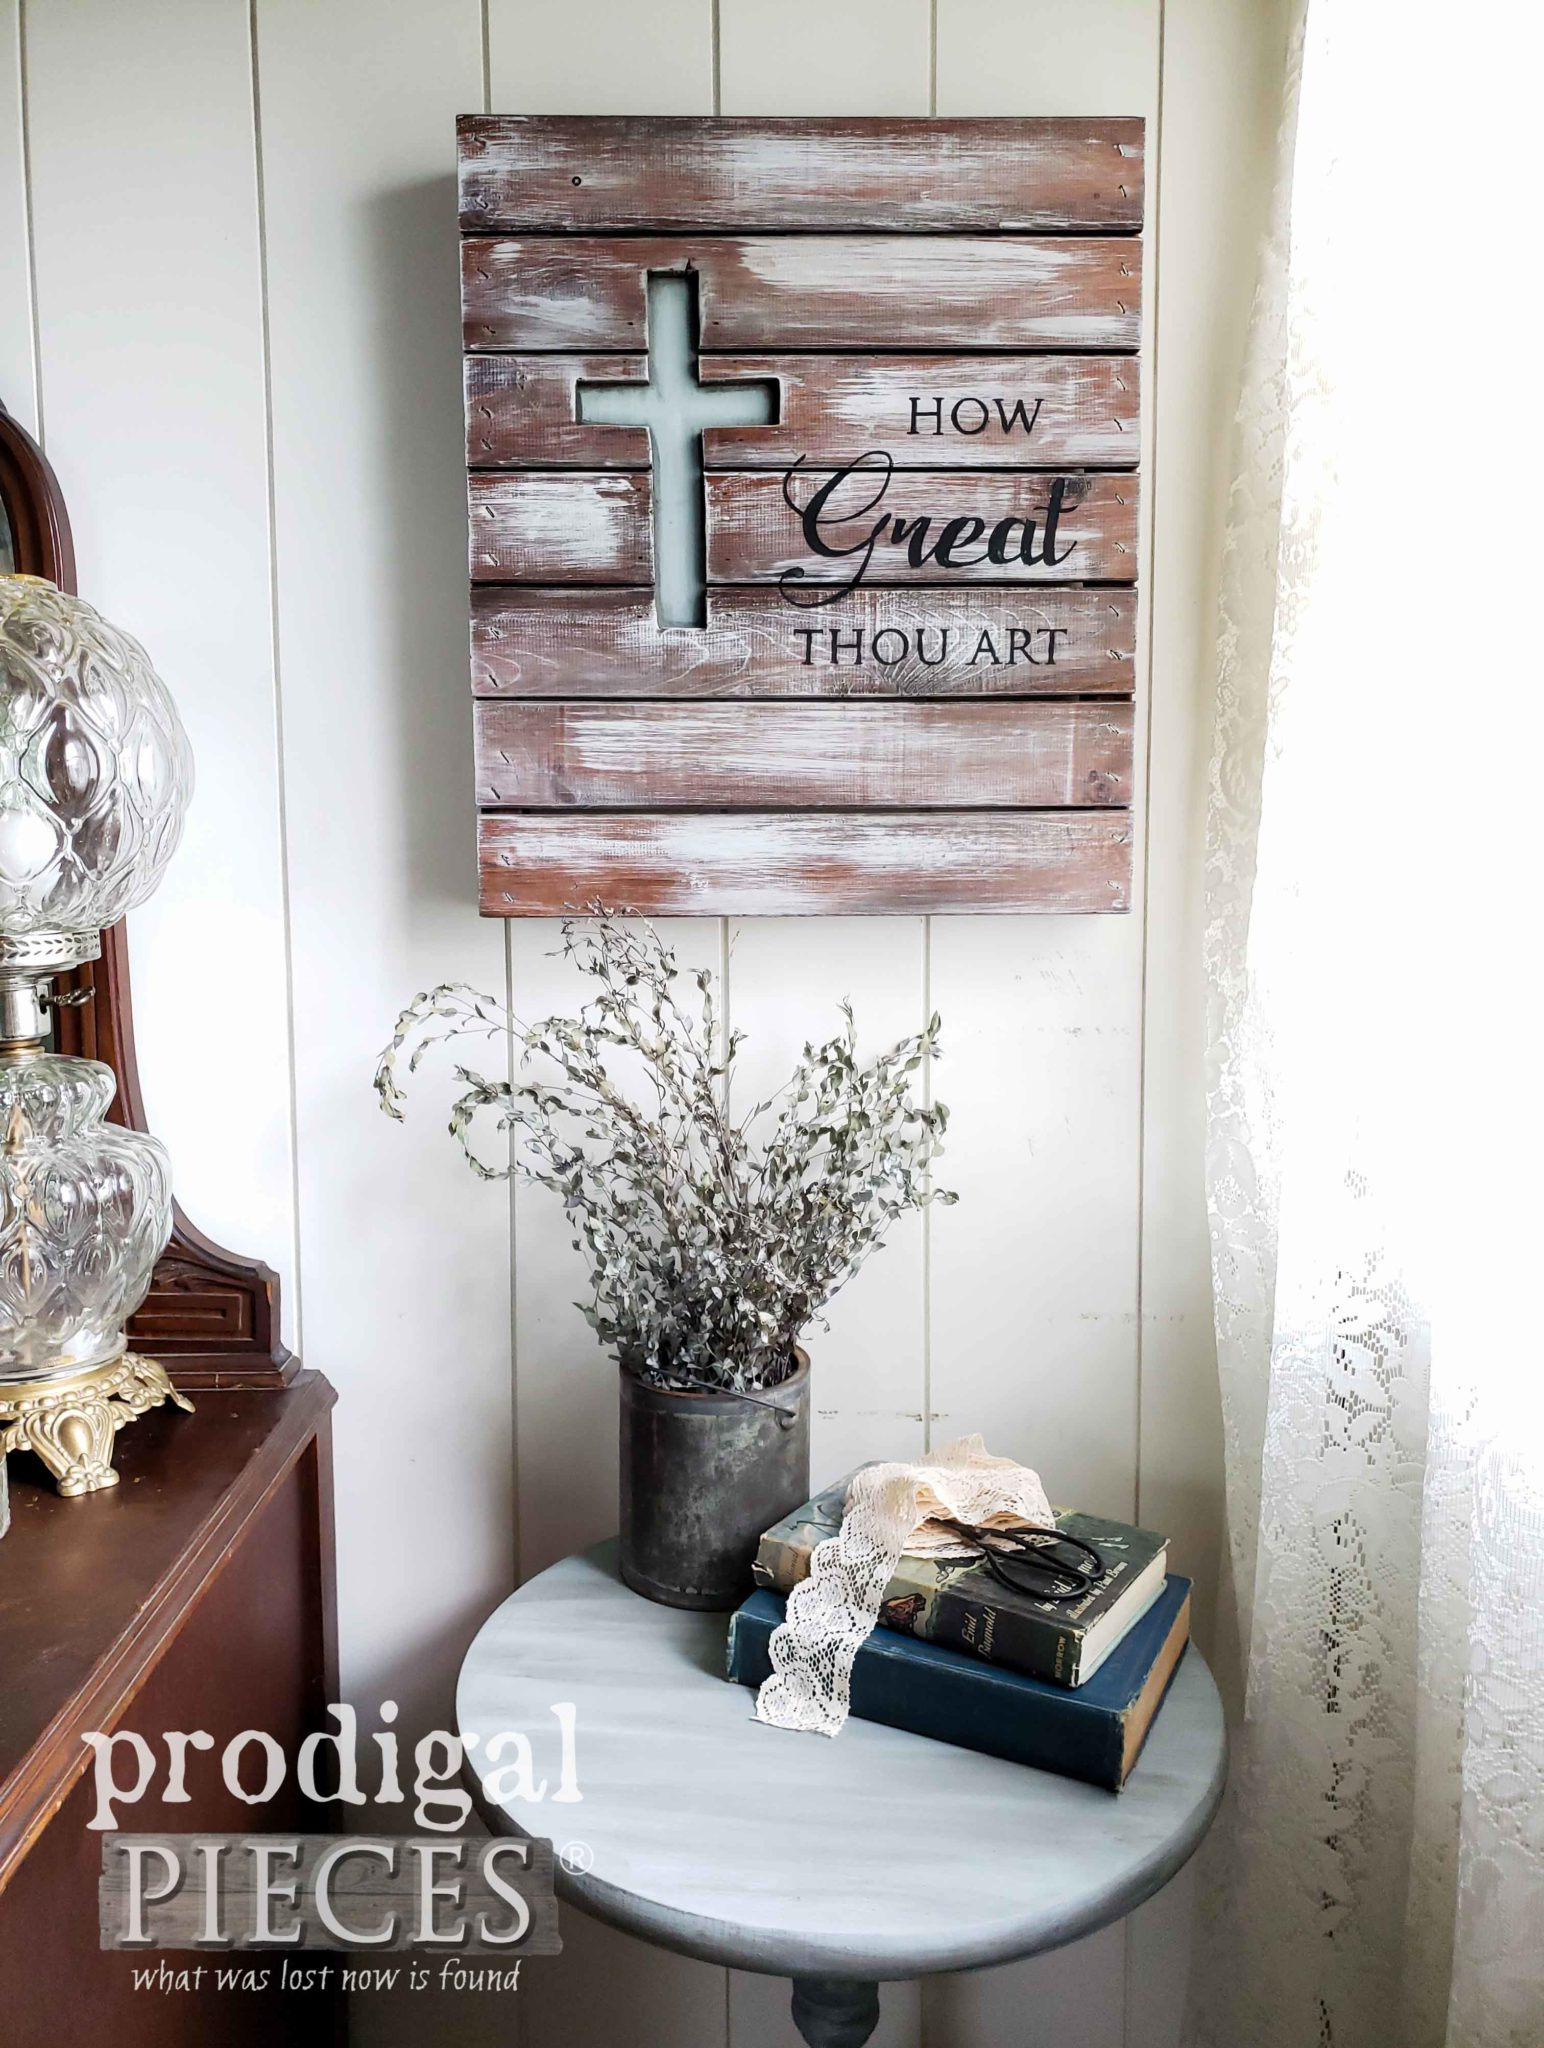 Modern Farmhouse Decor from Upcycled Finds by Larissa of Prodigal Pieces | prodigalpieces.com